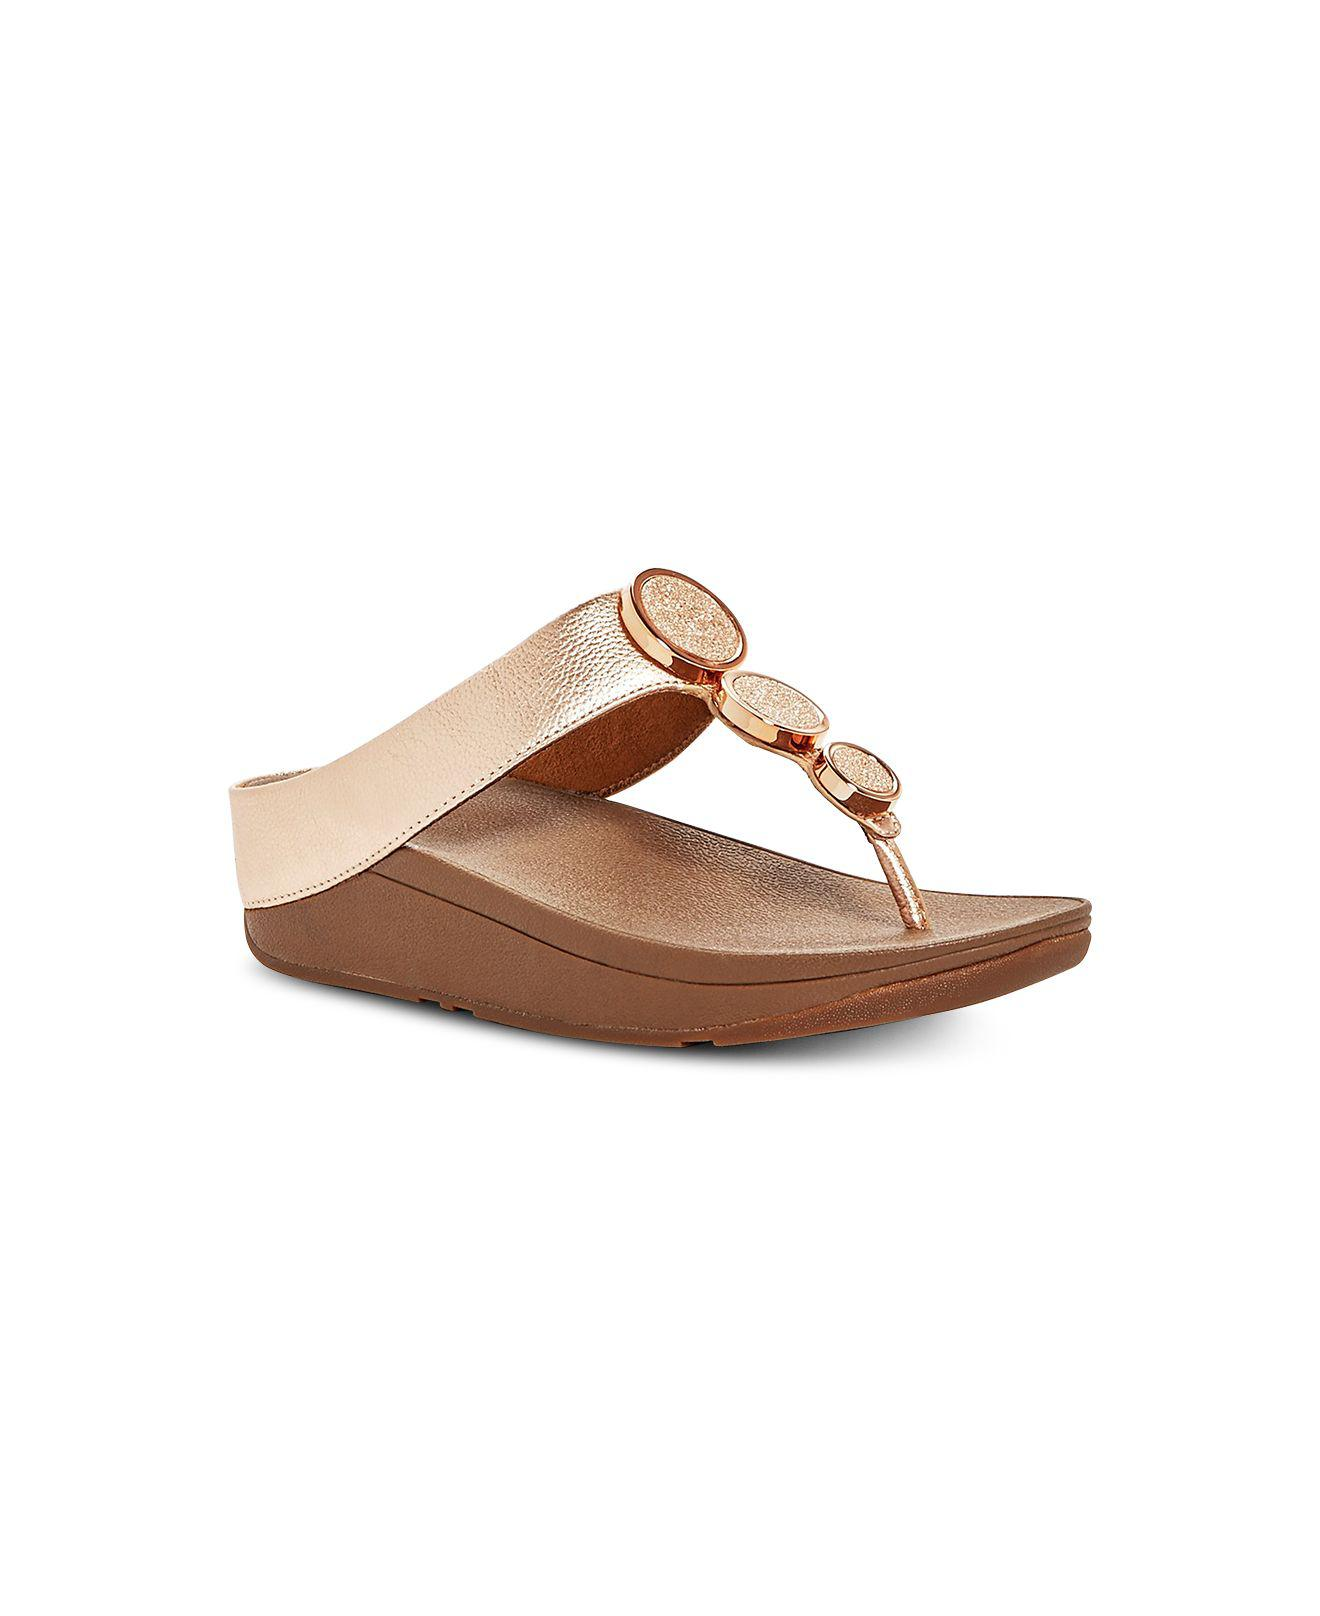 54fc8dc0350 Lyst - Fitflop Halo Toe-thong Sandals in Brown - Save 5%